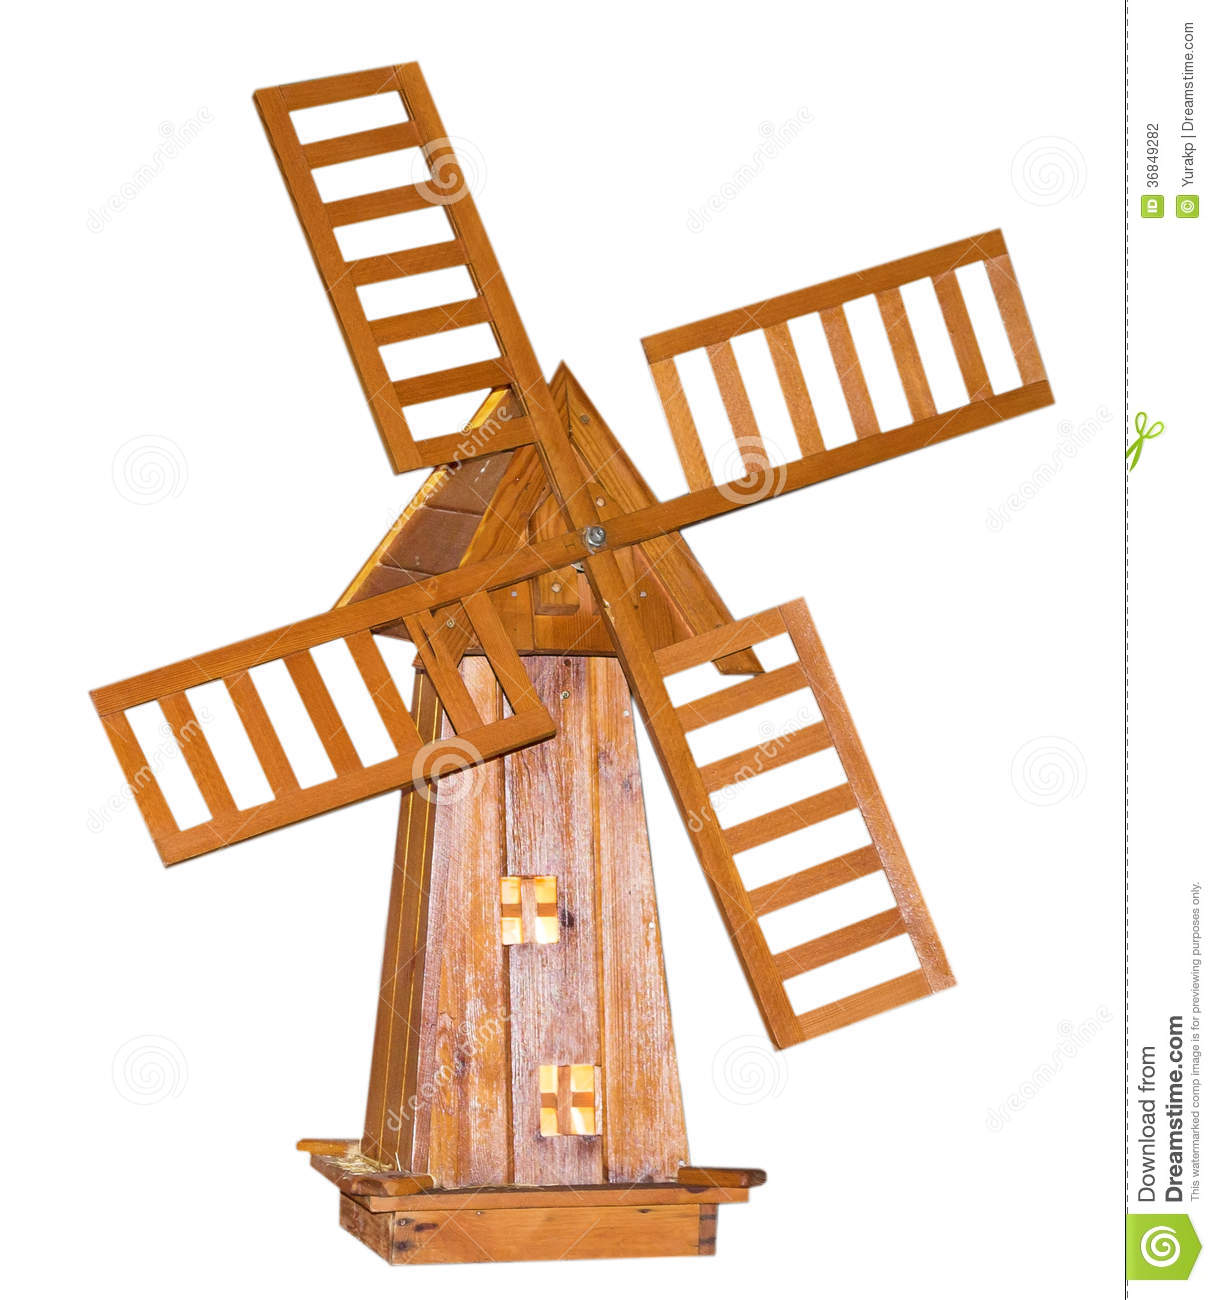 Moulin vent en bois sur le fond blanc photo stock - Moulin a vent deco exterieur ...